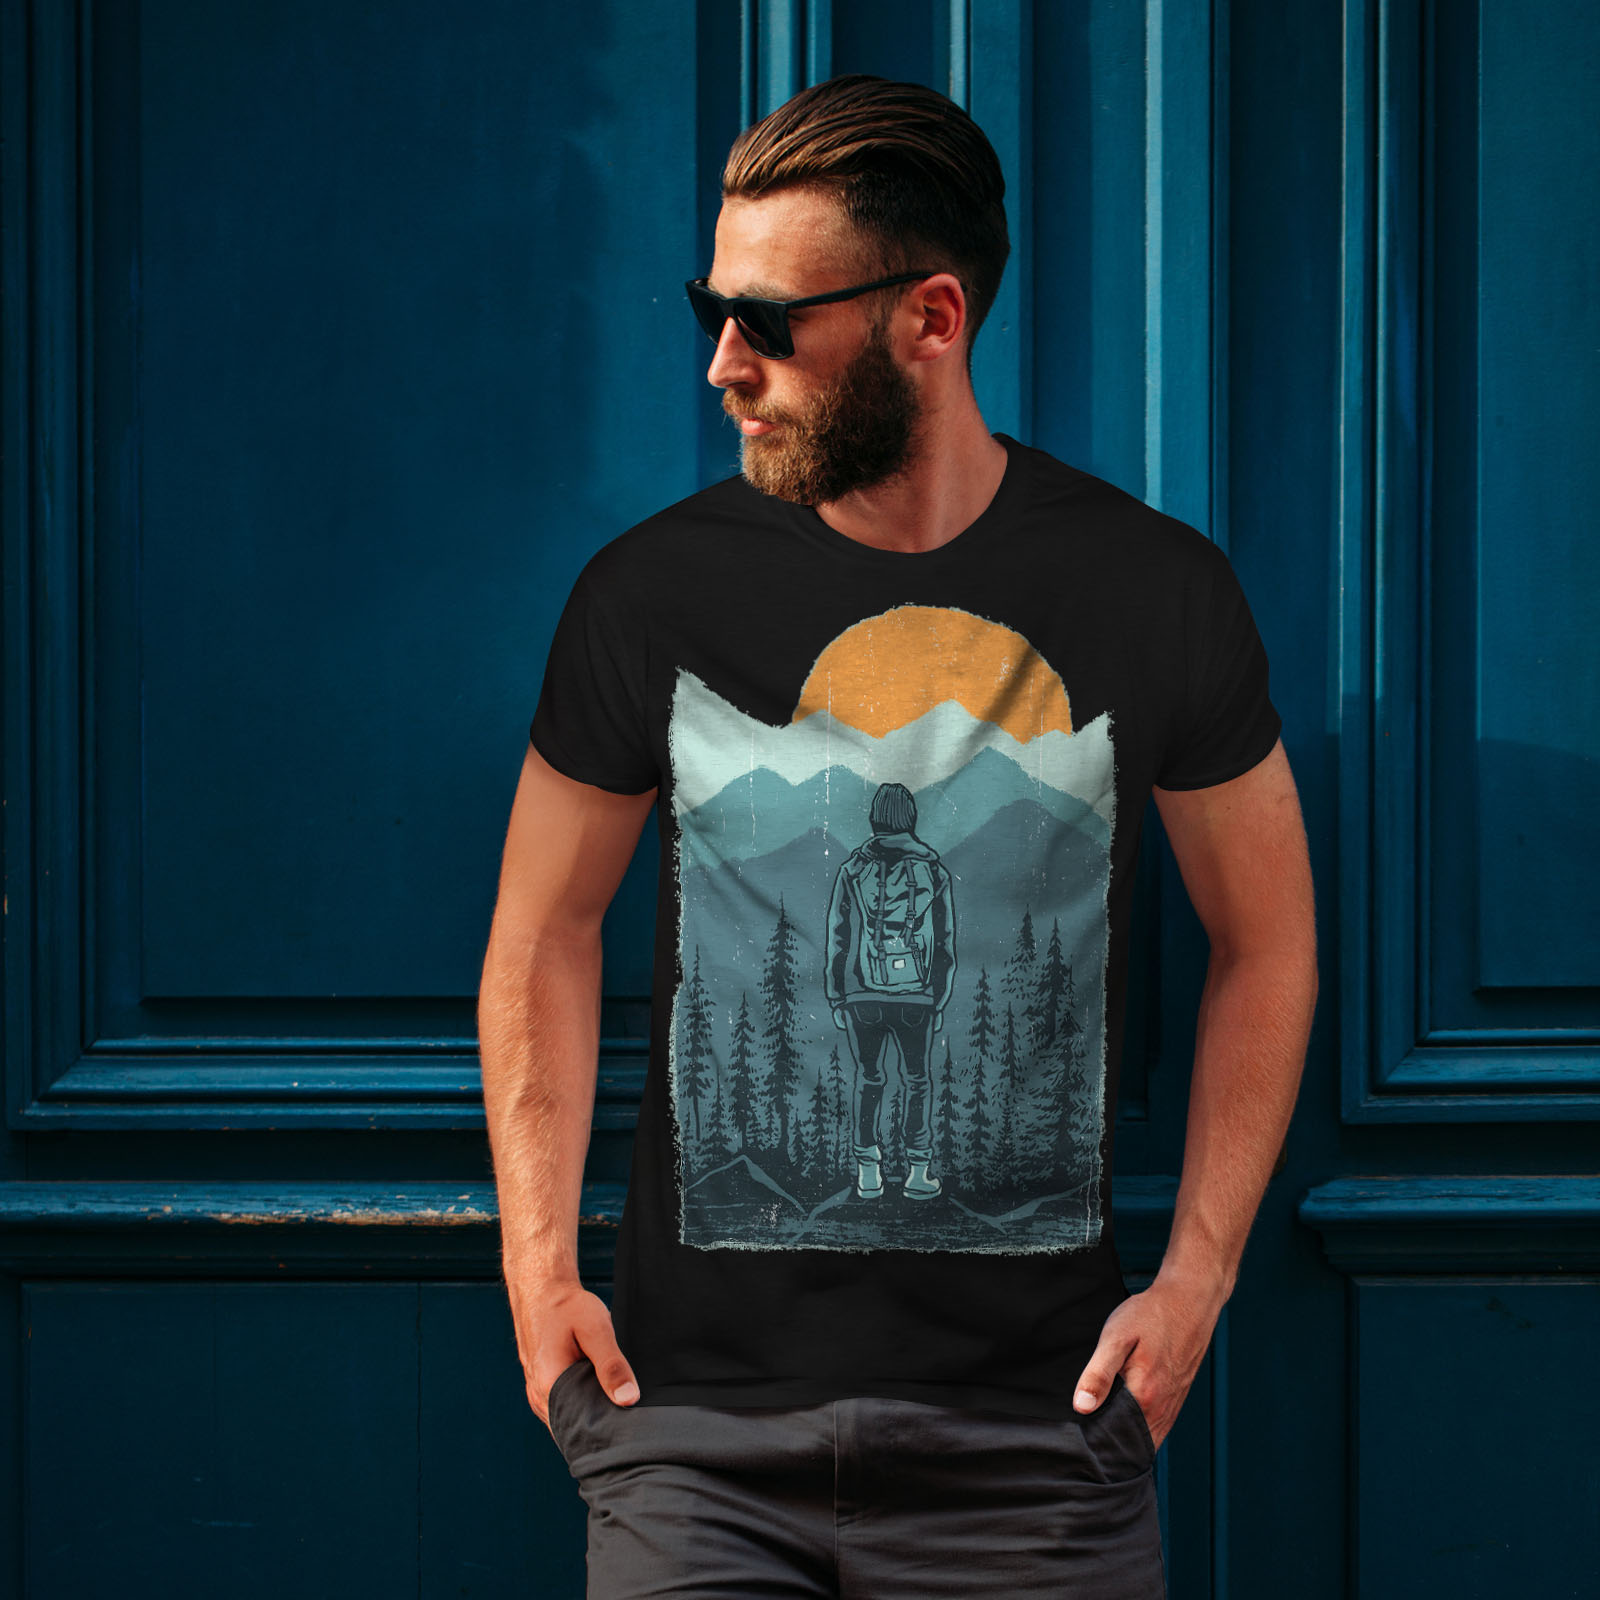 Wellcoda-SUNSET-Wilderness-CAMP-Da-Uomo-T-shirt-Wild-design-grafico-stampato-T-shirt miniatura 4